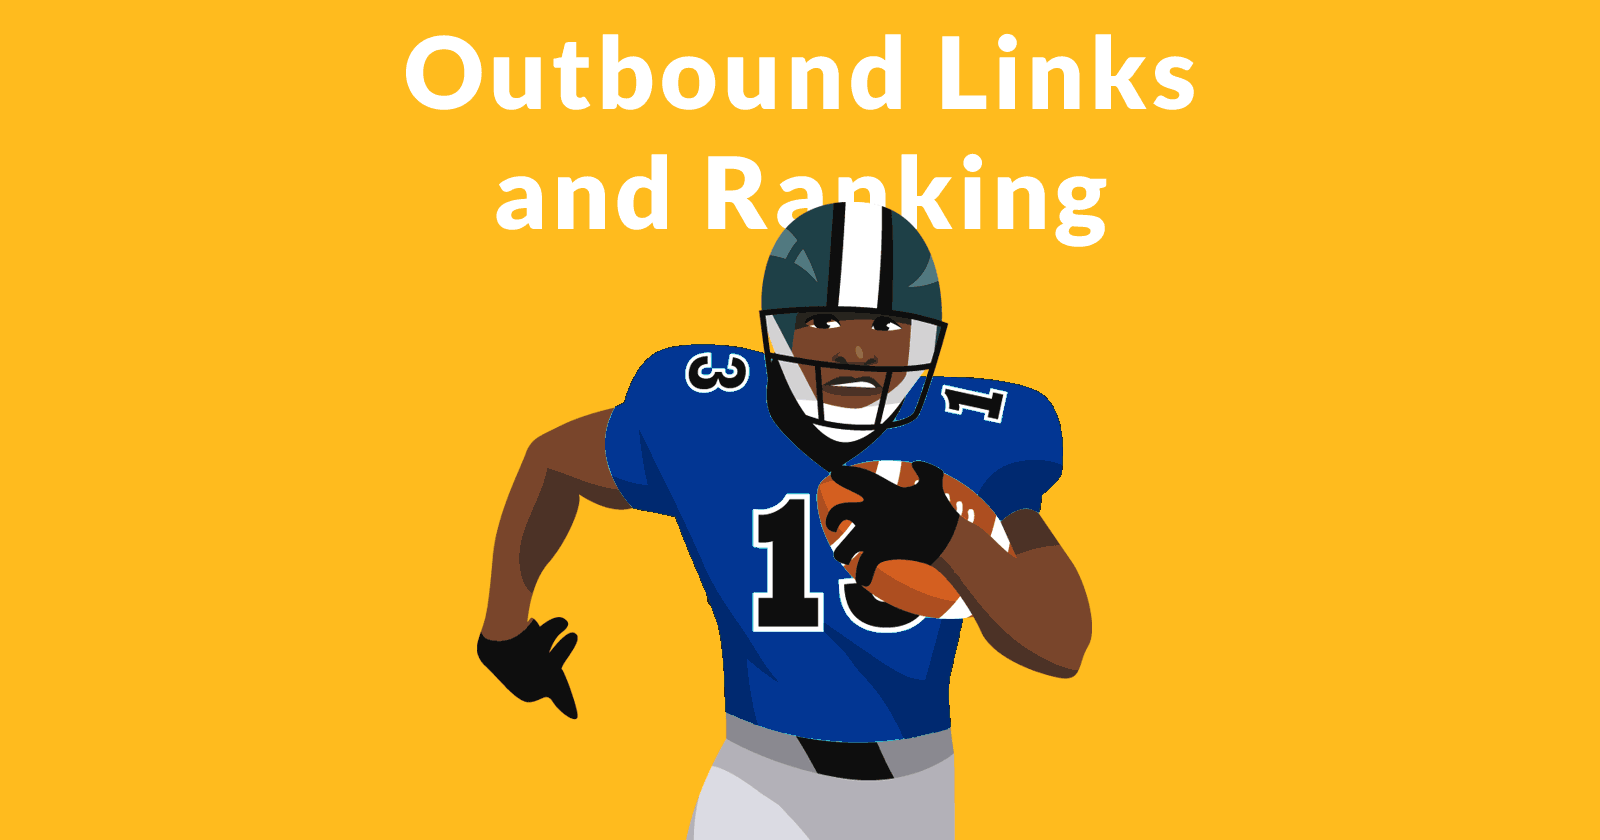 How Outbound Links May Affect Rankings - Search Engine Journal